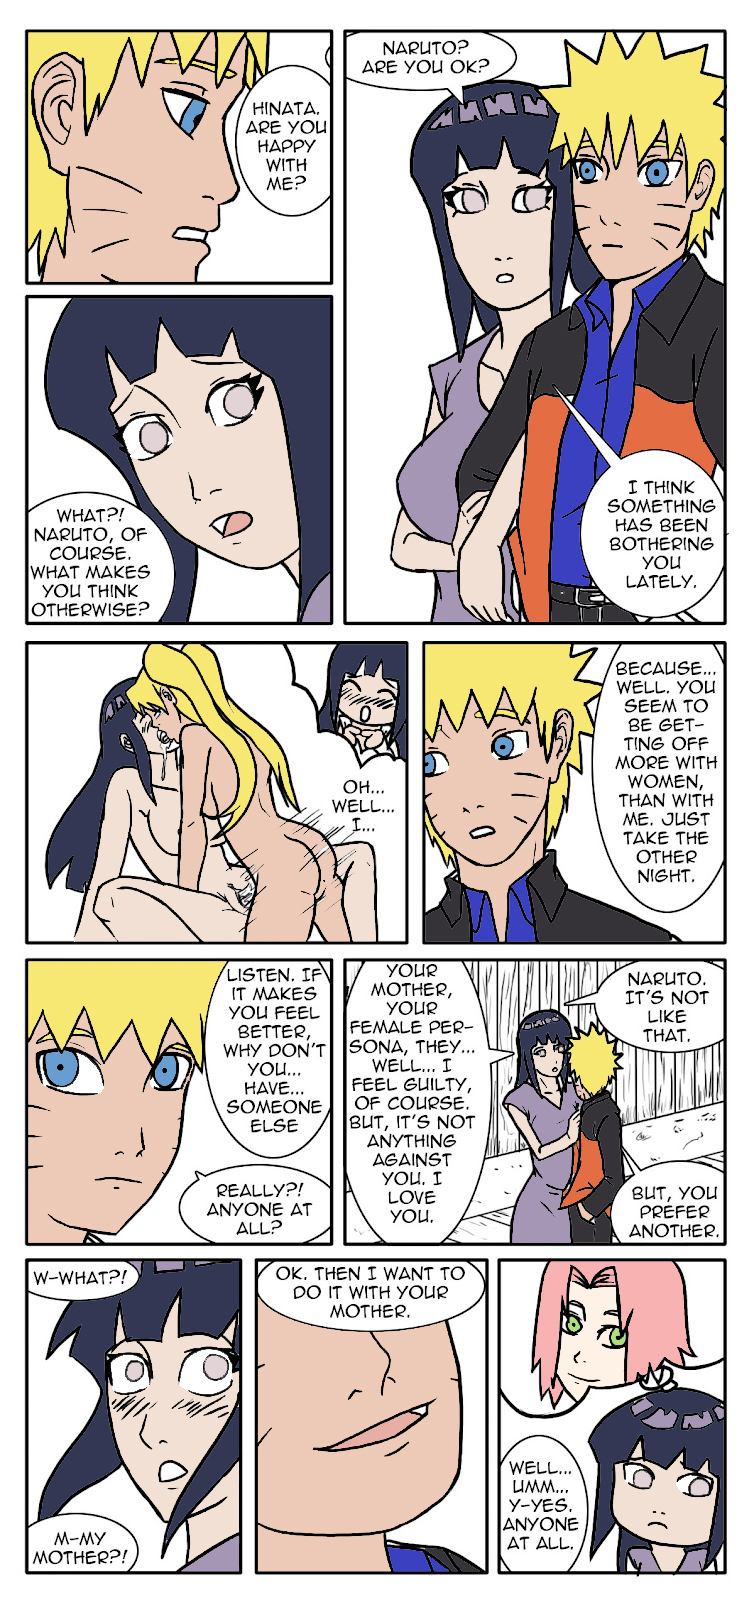 fem a naruto fanfiction is mother Gay cowboy sex red dead redemption 2